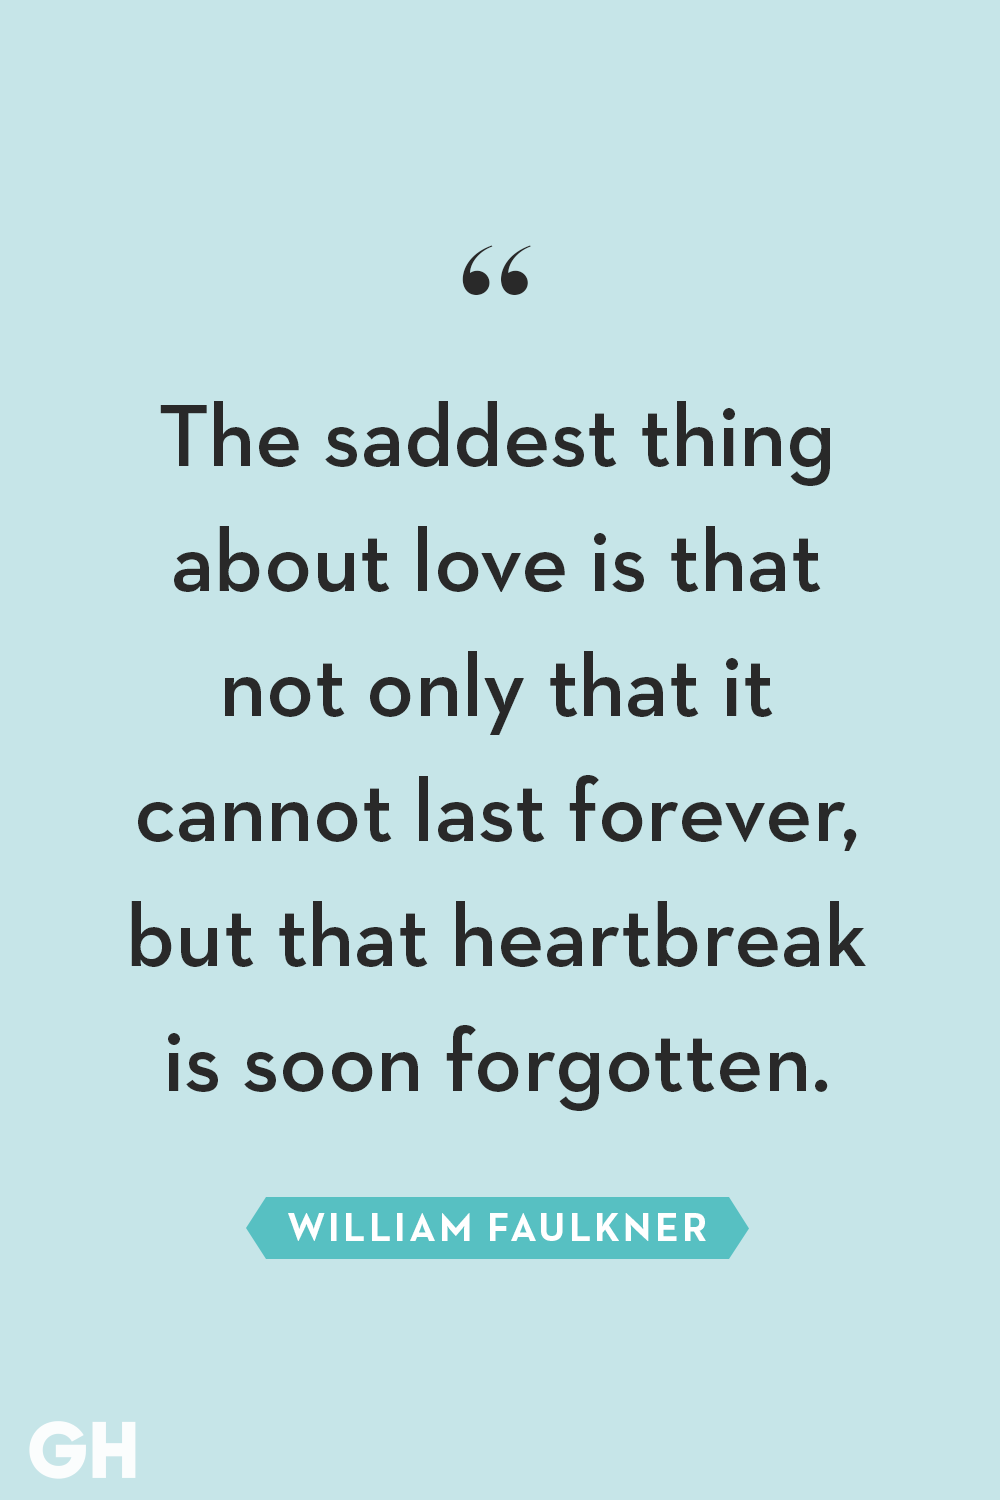 10 Quotes About Broken Hearts - Wise Words About Heartbreak